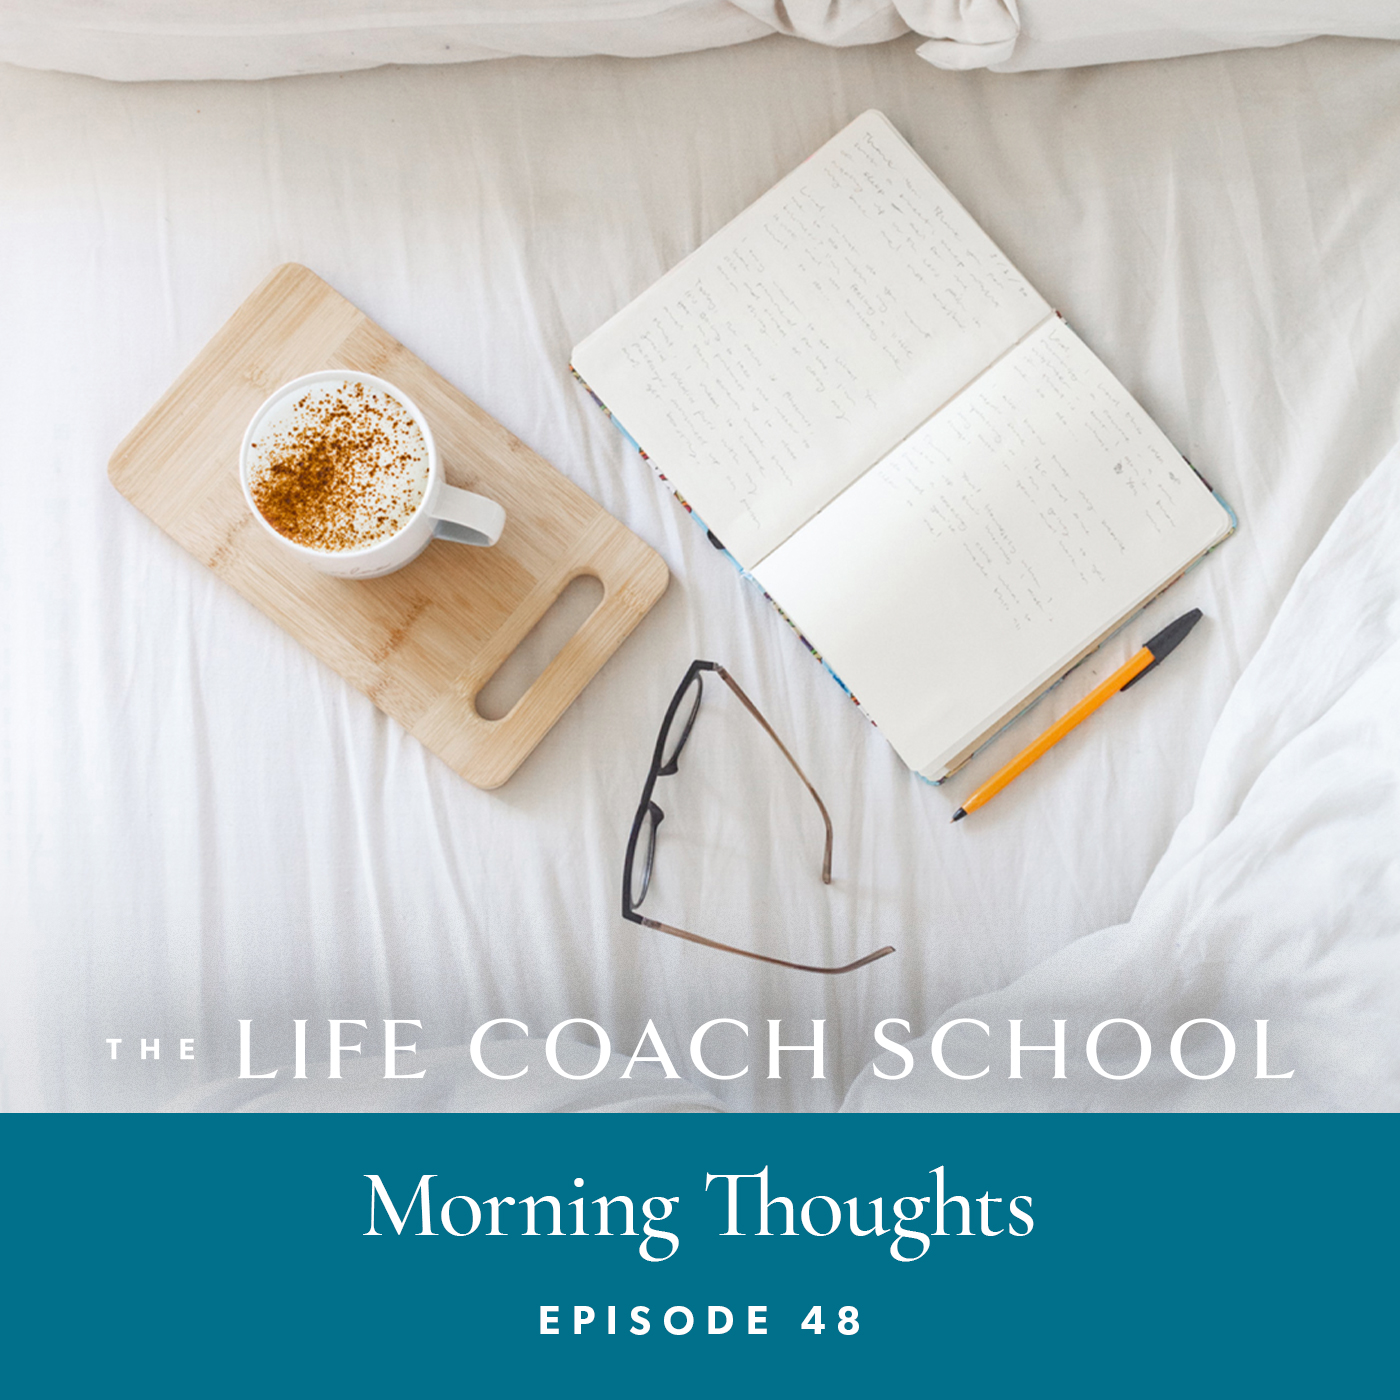 The Life Coach School Podcast with Brooke Castillo | Episode 48 | Morning Thoughts